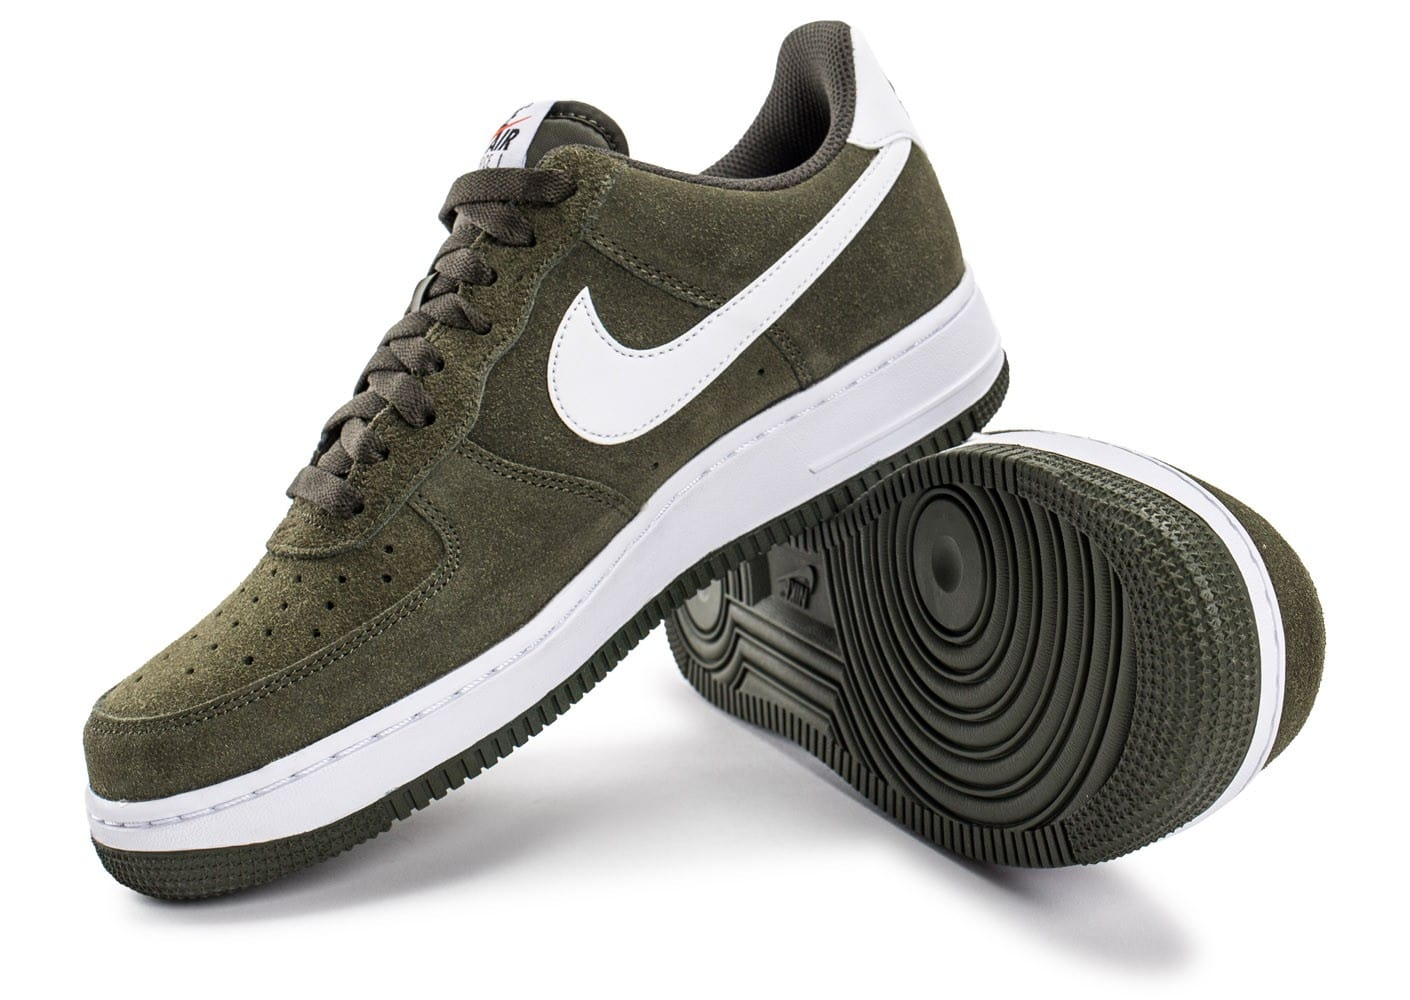 nike air force 1 suede kaki chaussures homme chausport. Black Bedroom Furniture Sets. Home Design Ideas